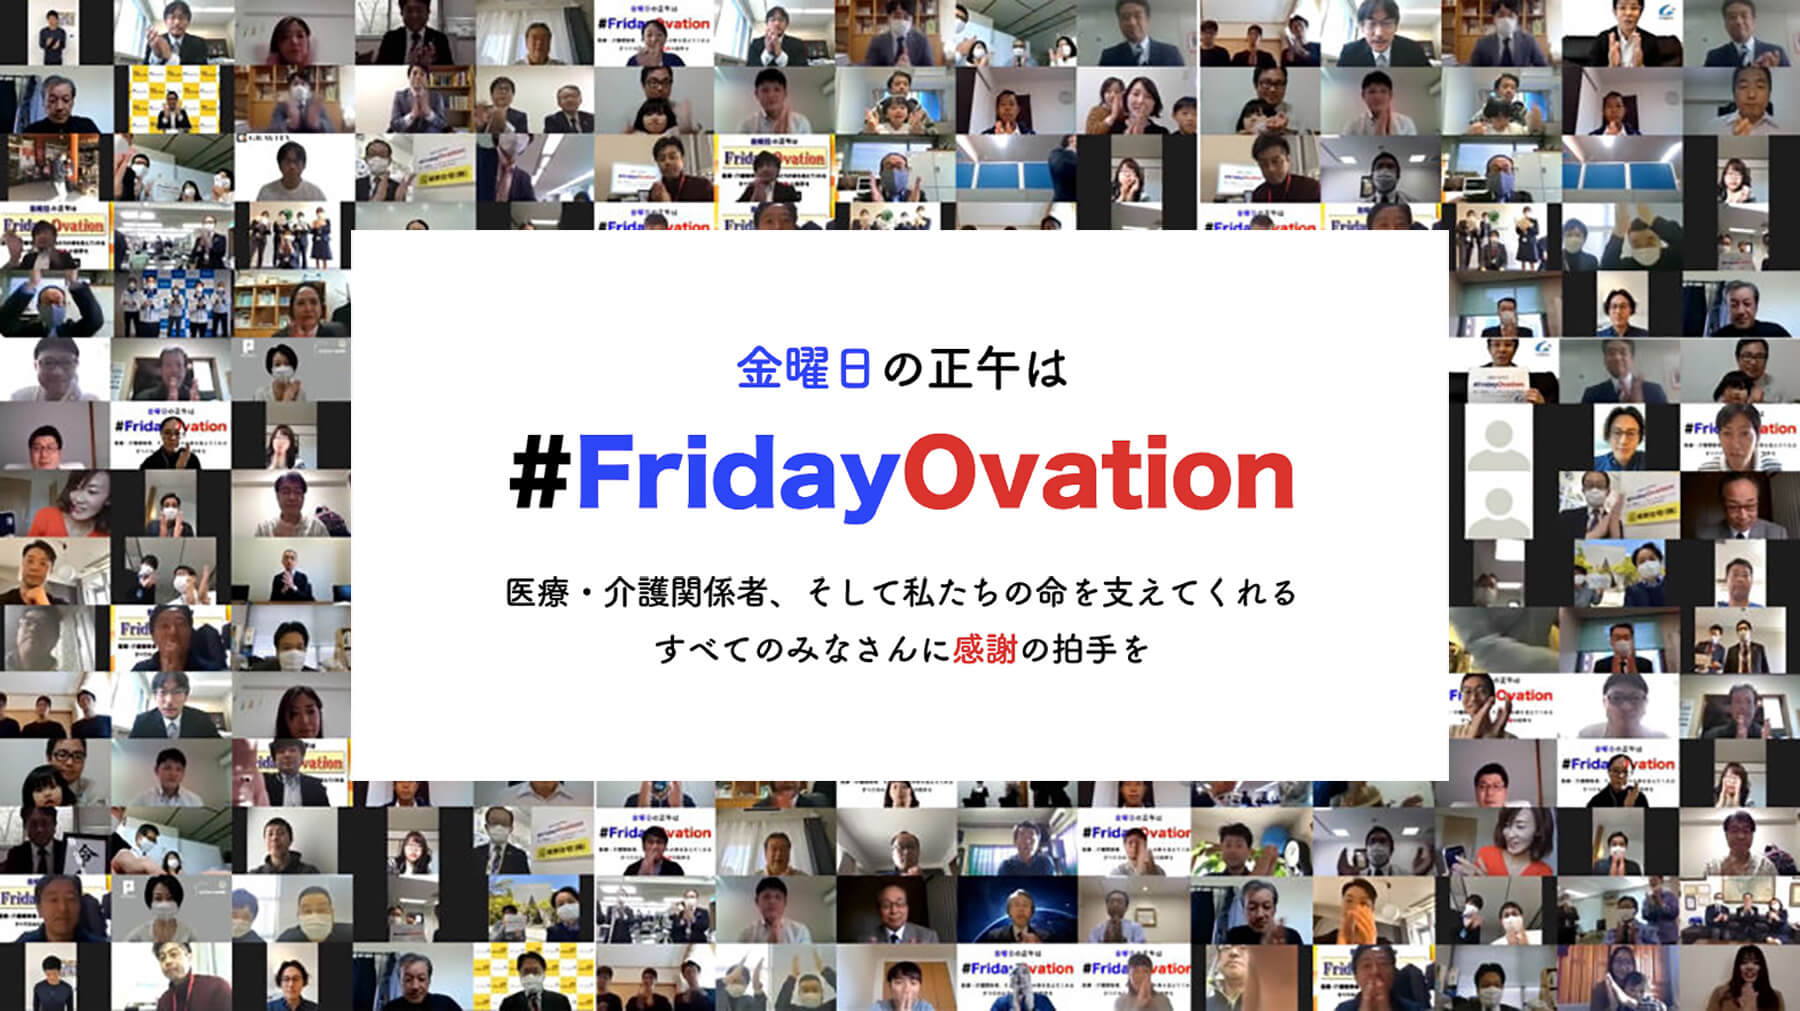 #Friday Ovation